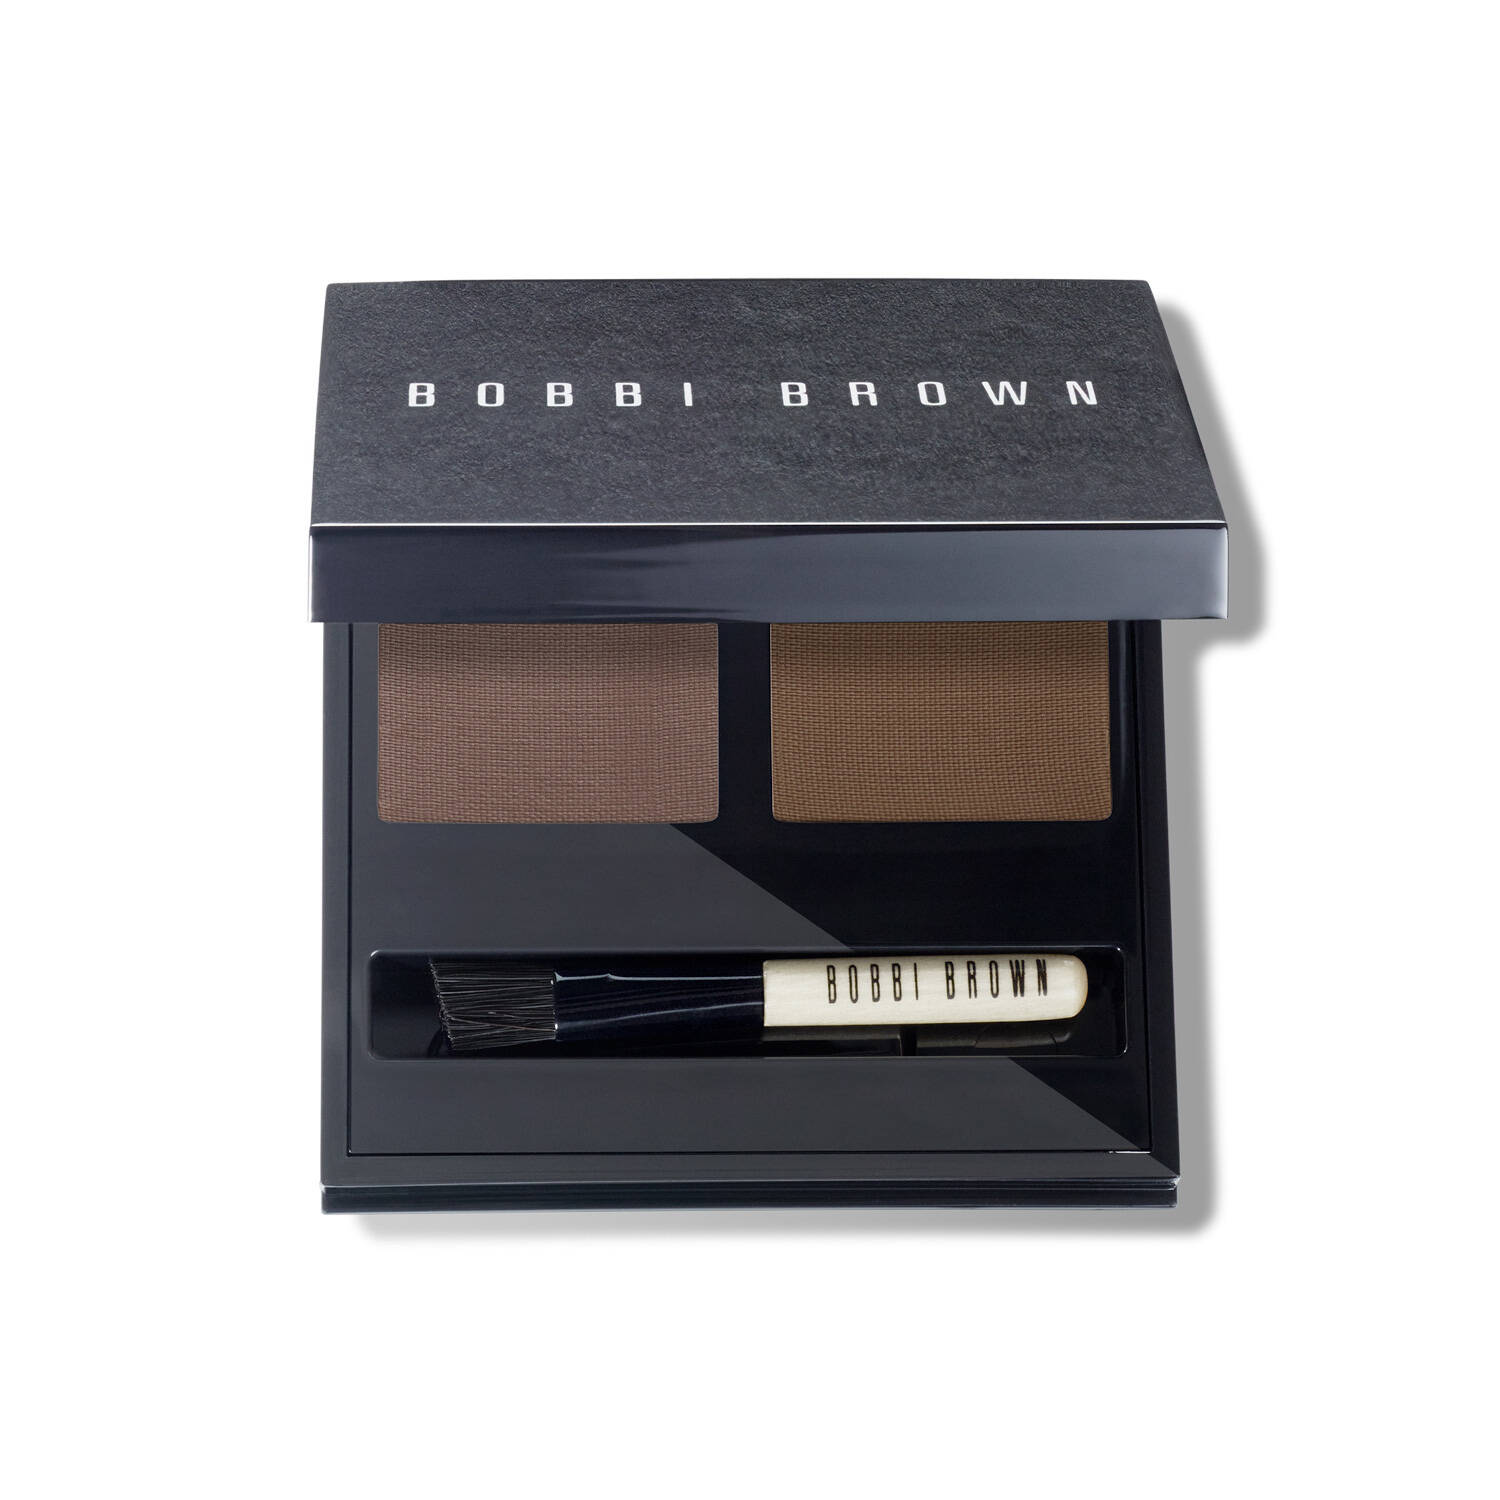 Bobbi Brown Brow Kit - Dark (3 g) Make Up, Augen, Augenbrauen, Augen von Bobbi Brown